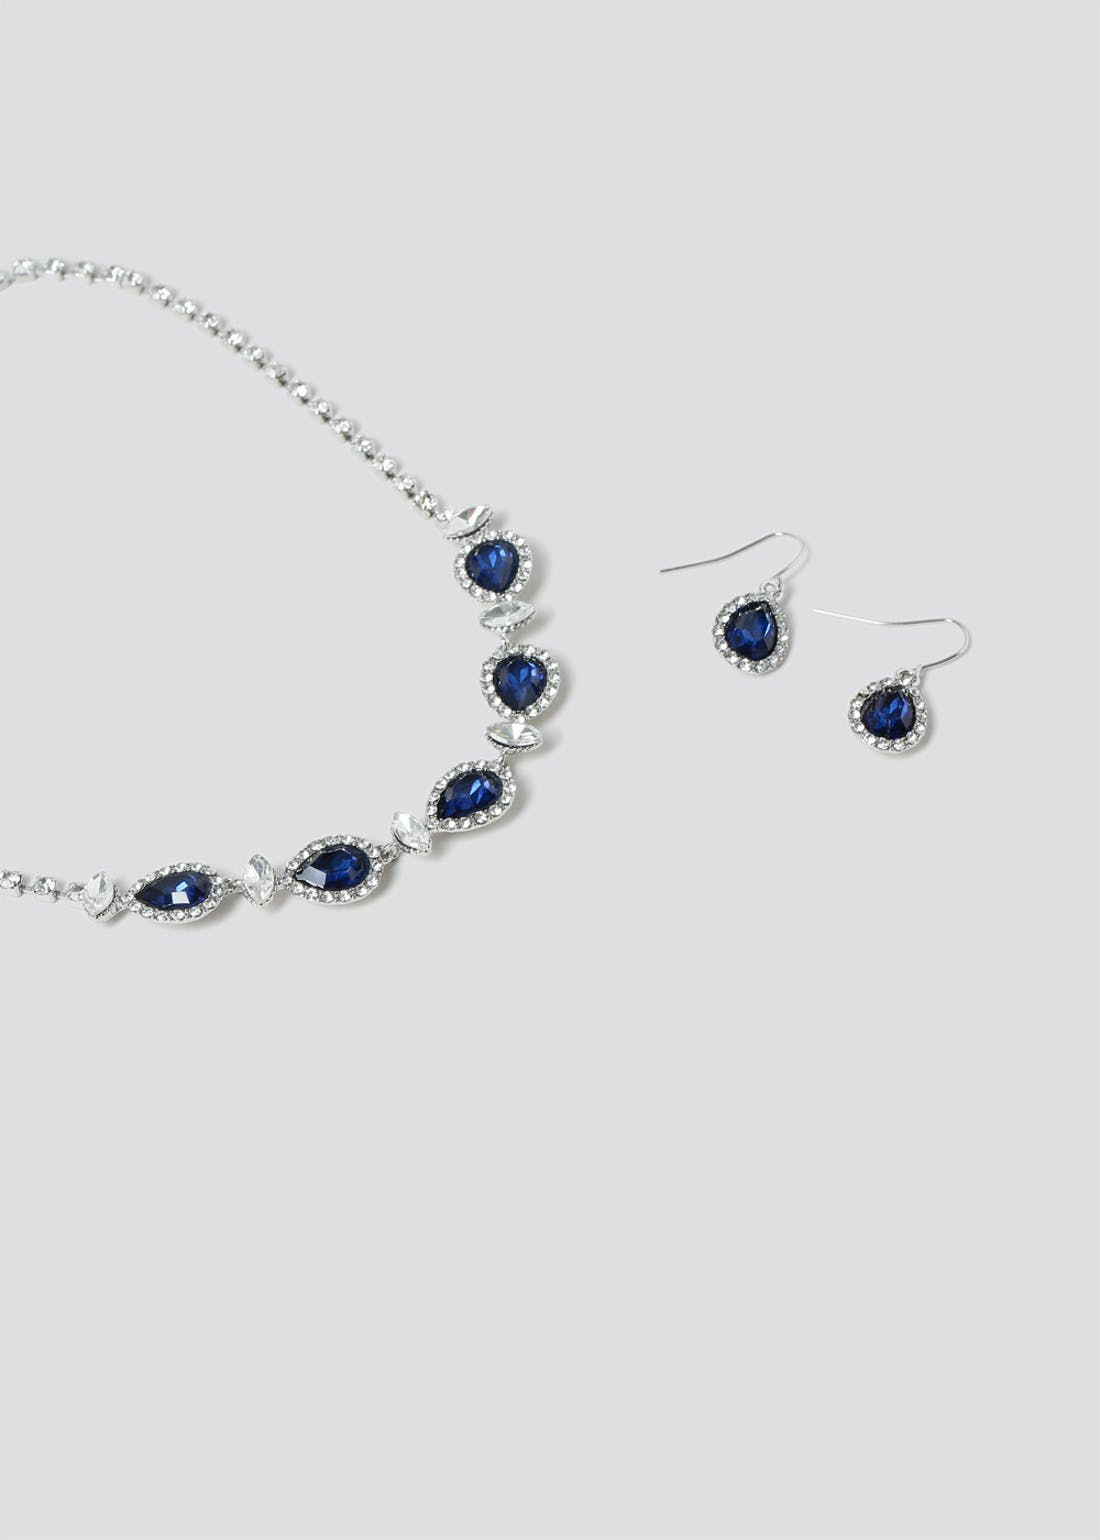 Rhinestone Cup chain Earring & Necklace Set.